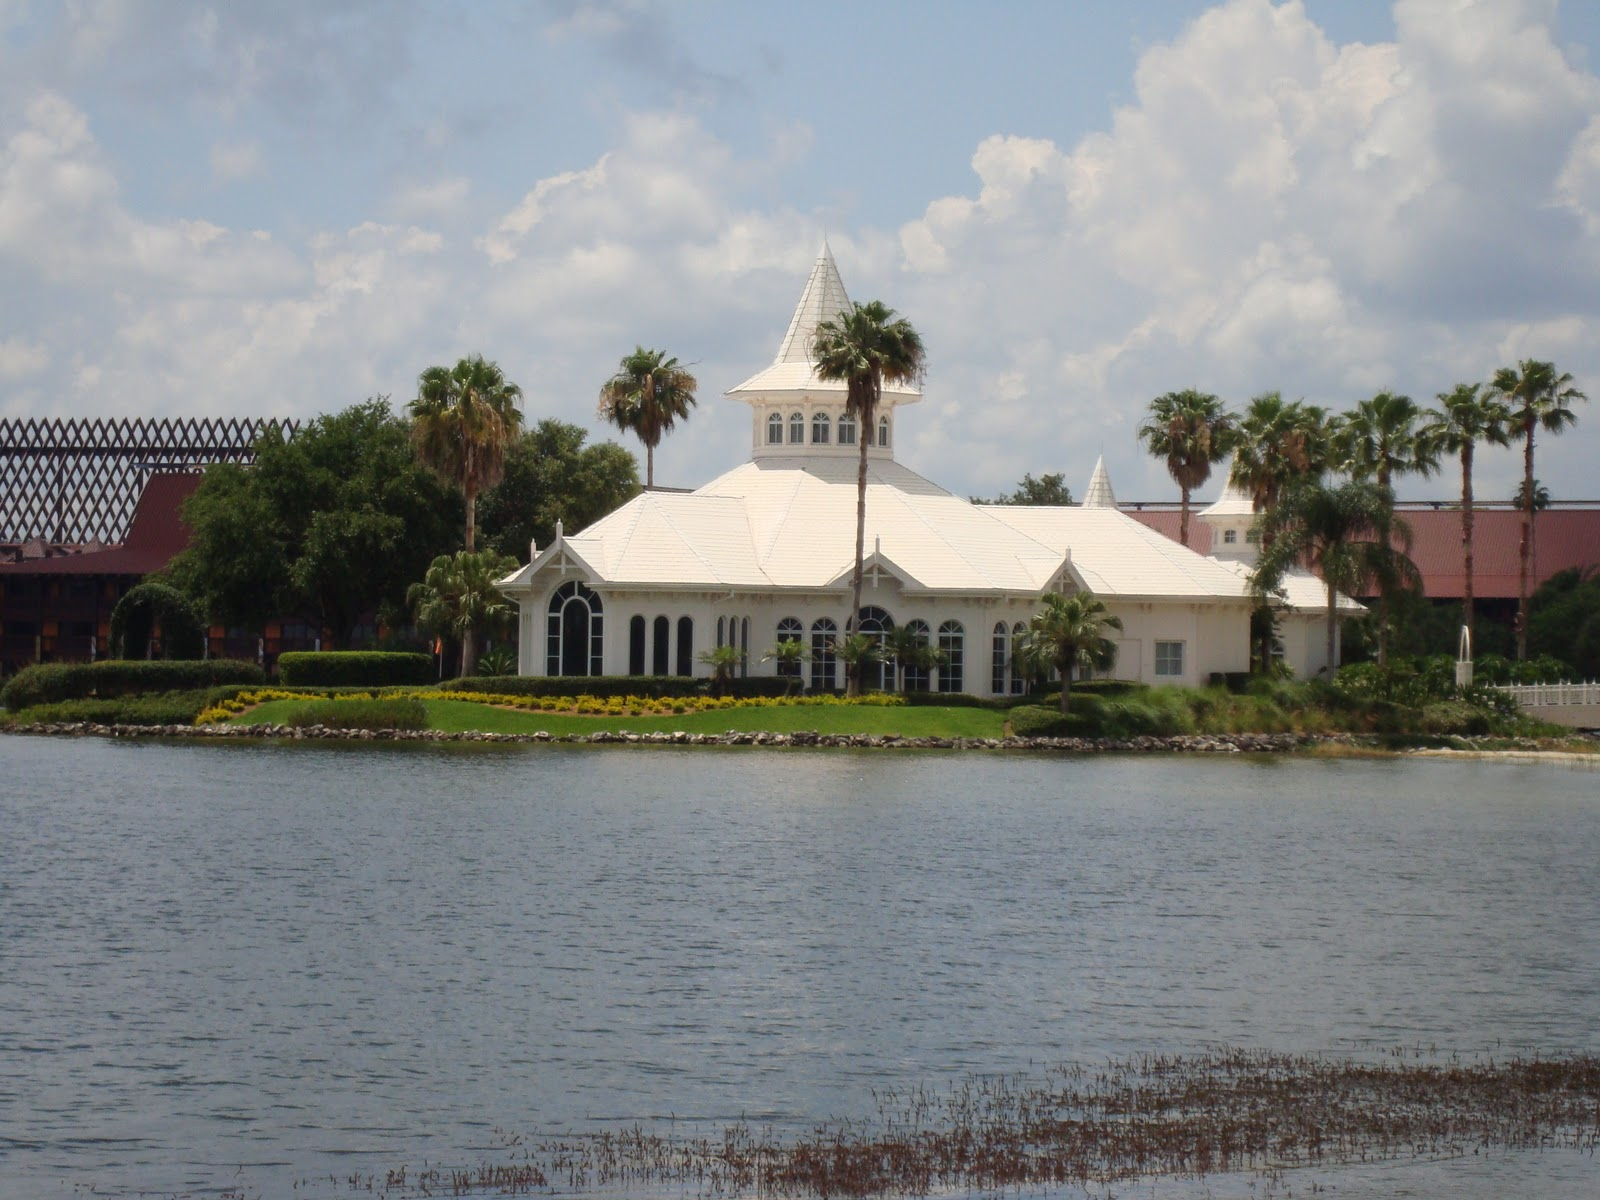 So Disney Wedding Wedding Pavilion Disney World